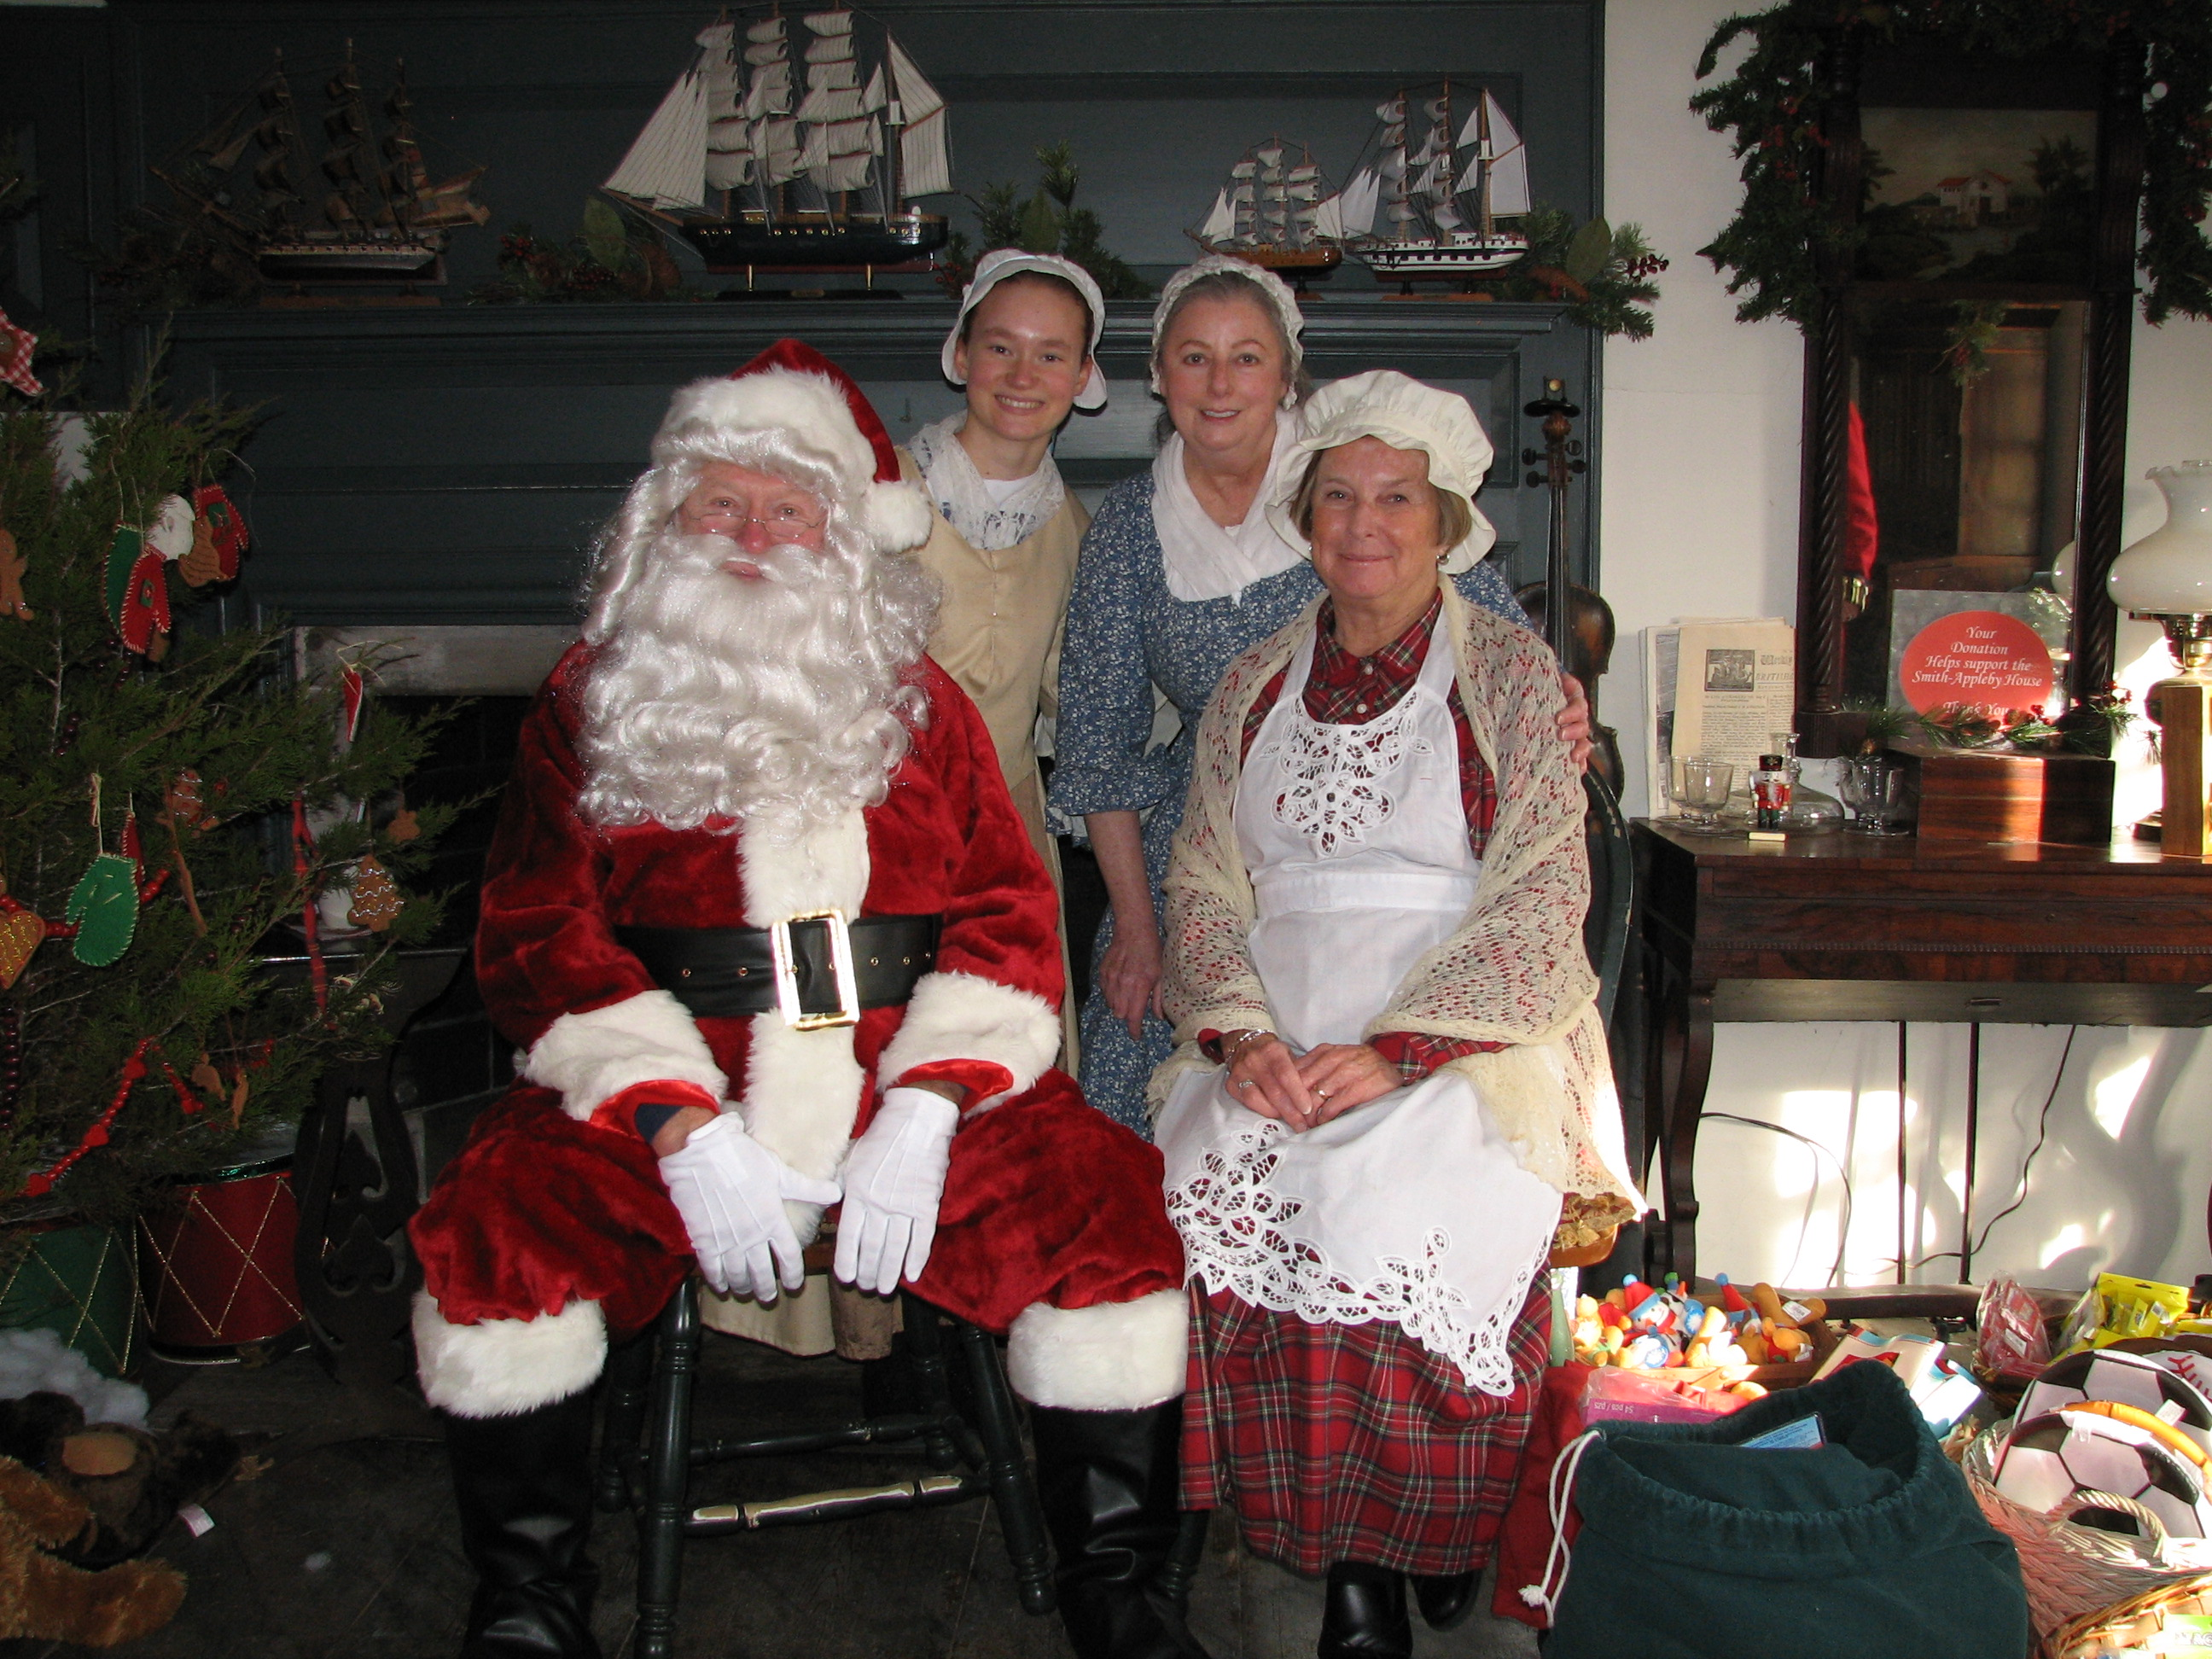 bring the kids to share christmas wishes photos with santa mrs claus at smith appleby house on dec 6 - Santa And Kids